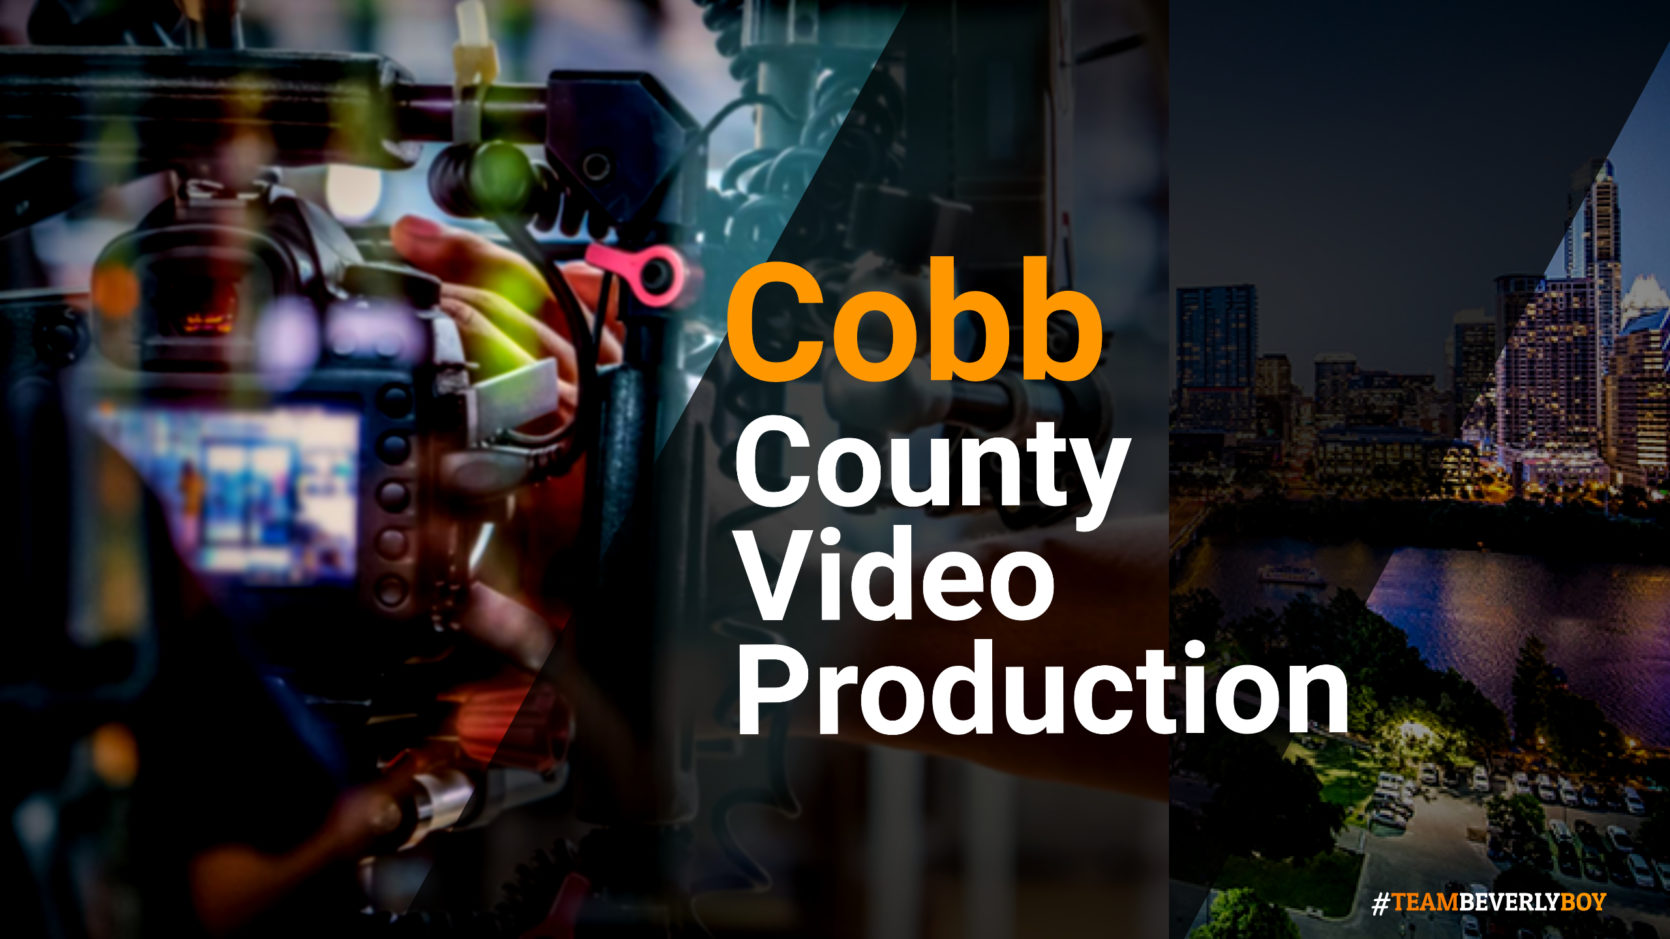 Cobb county video production